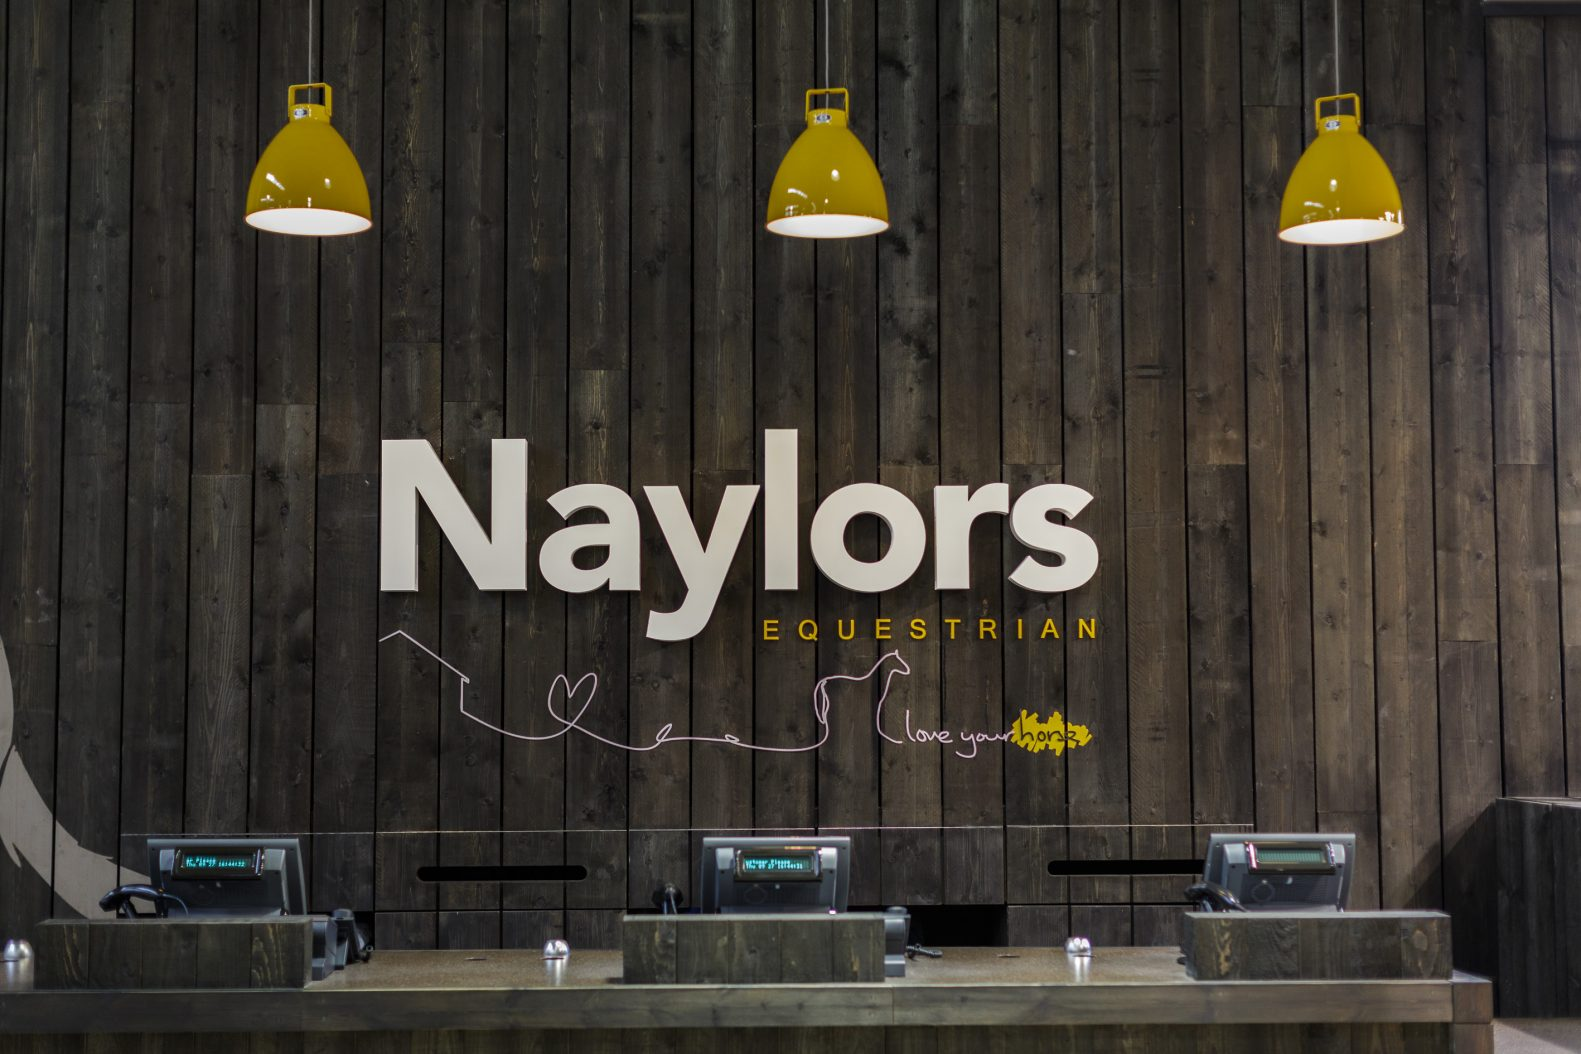 Naylors Equestrian Lighting Design Signage